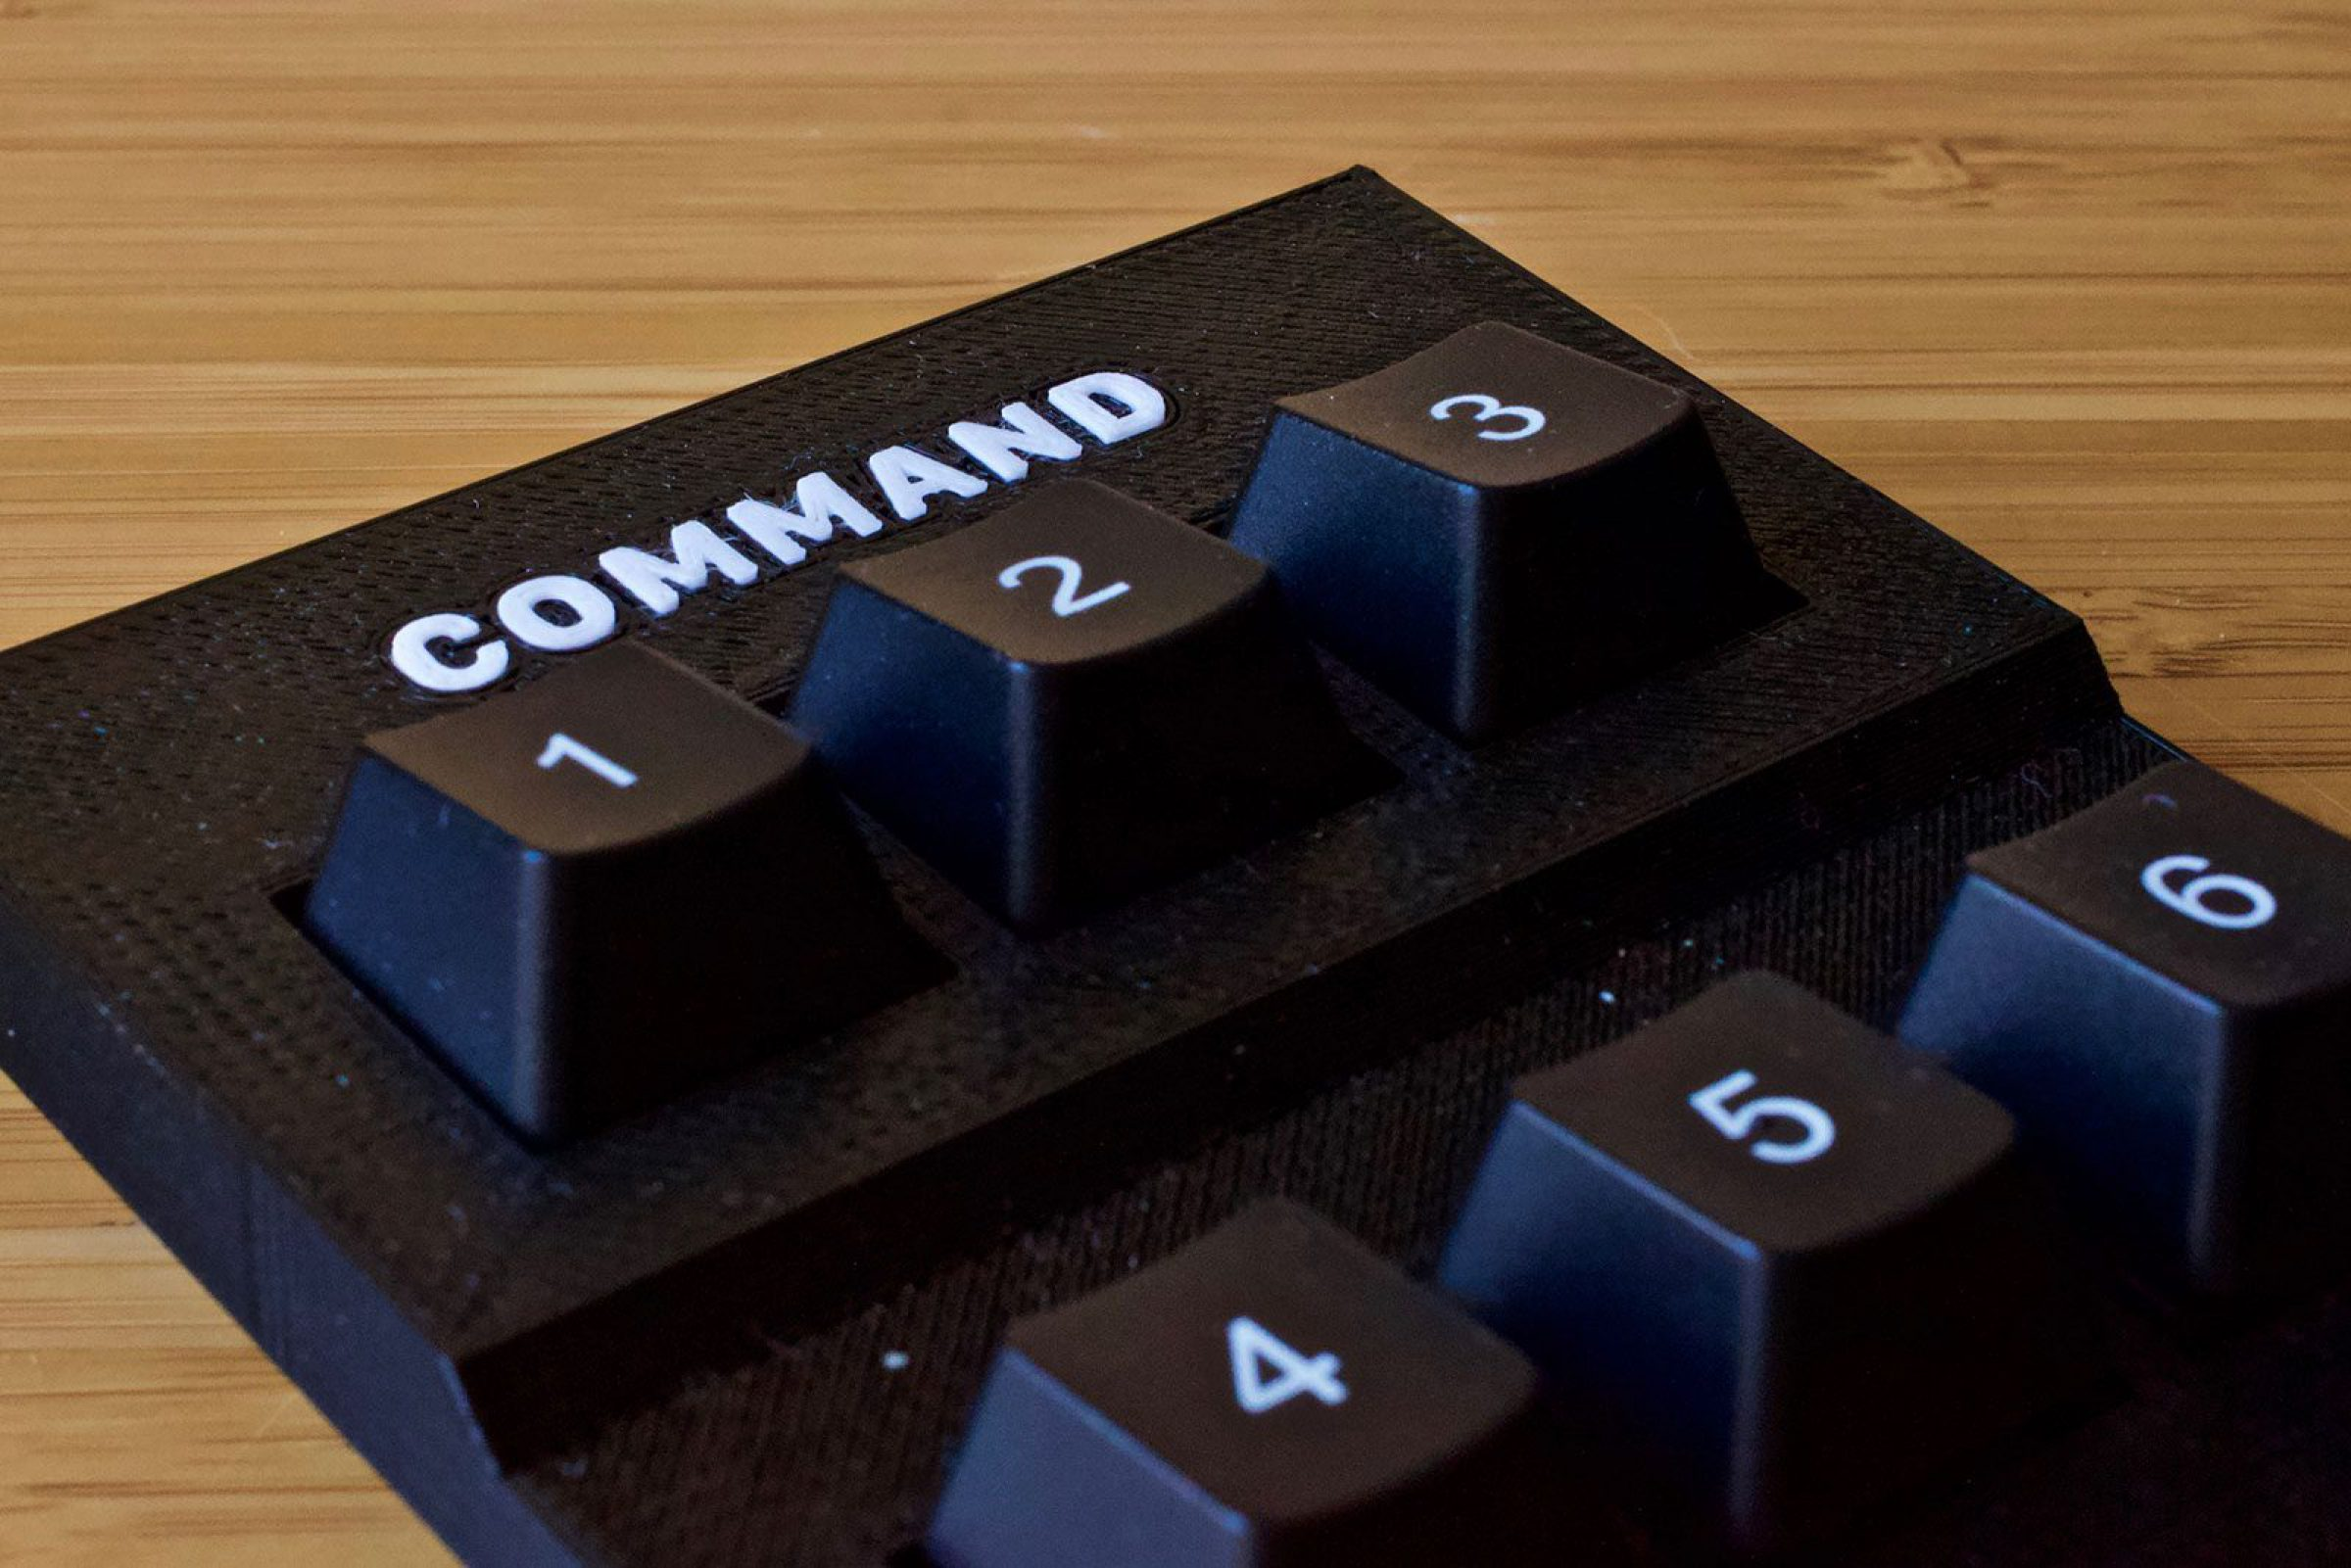 Keyboard Command Panel Component Test